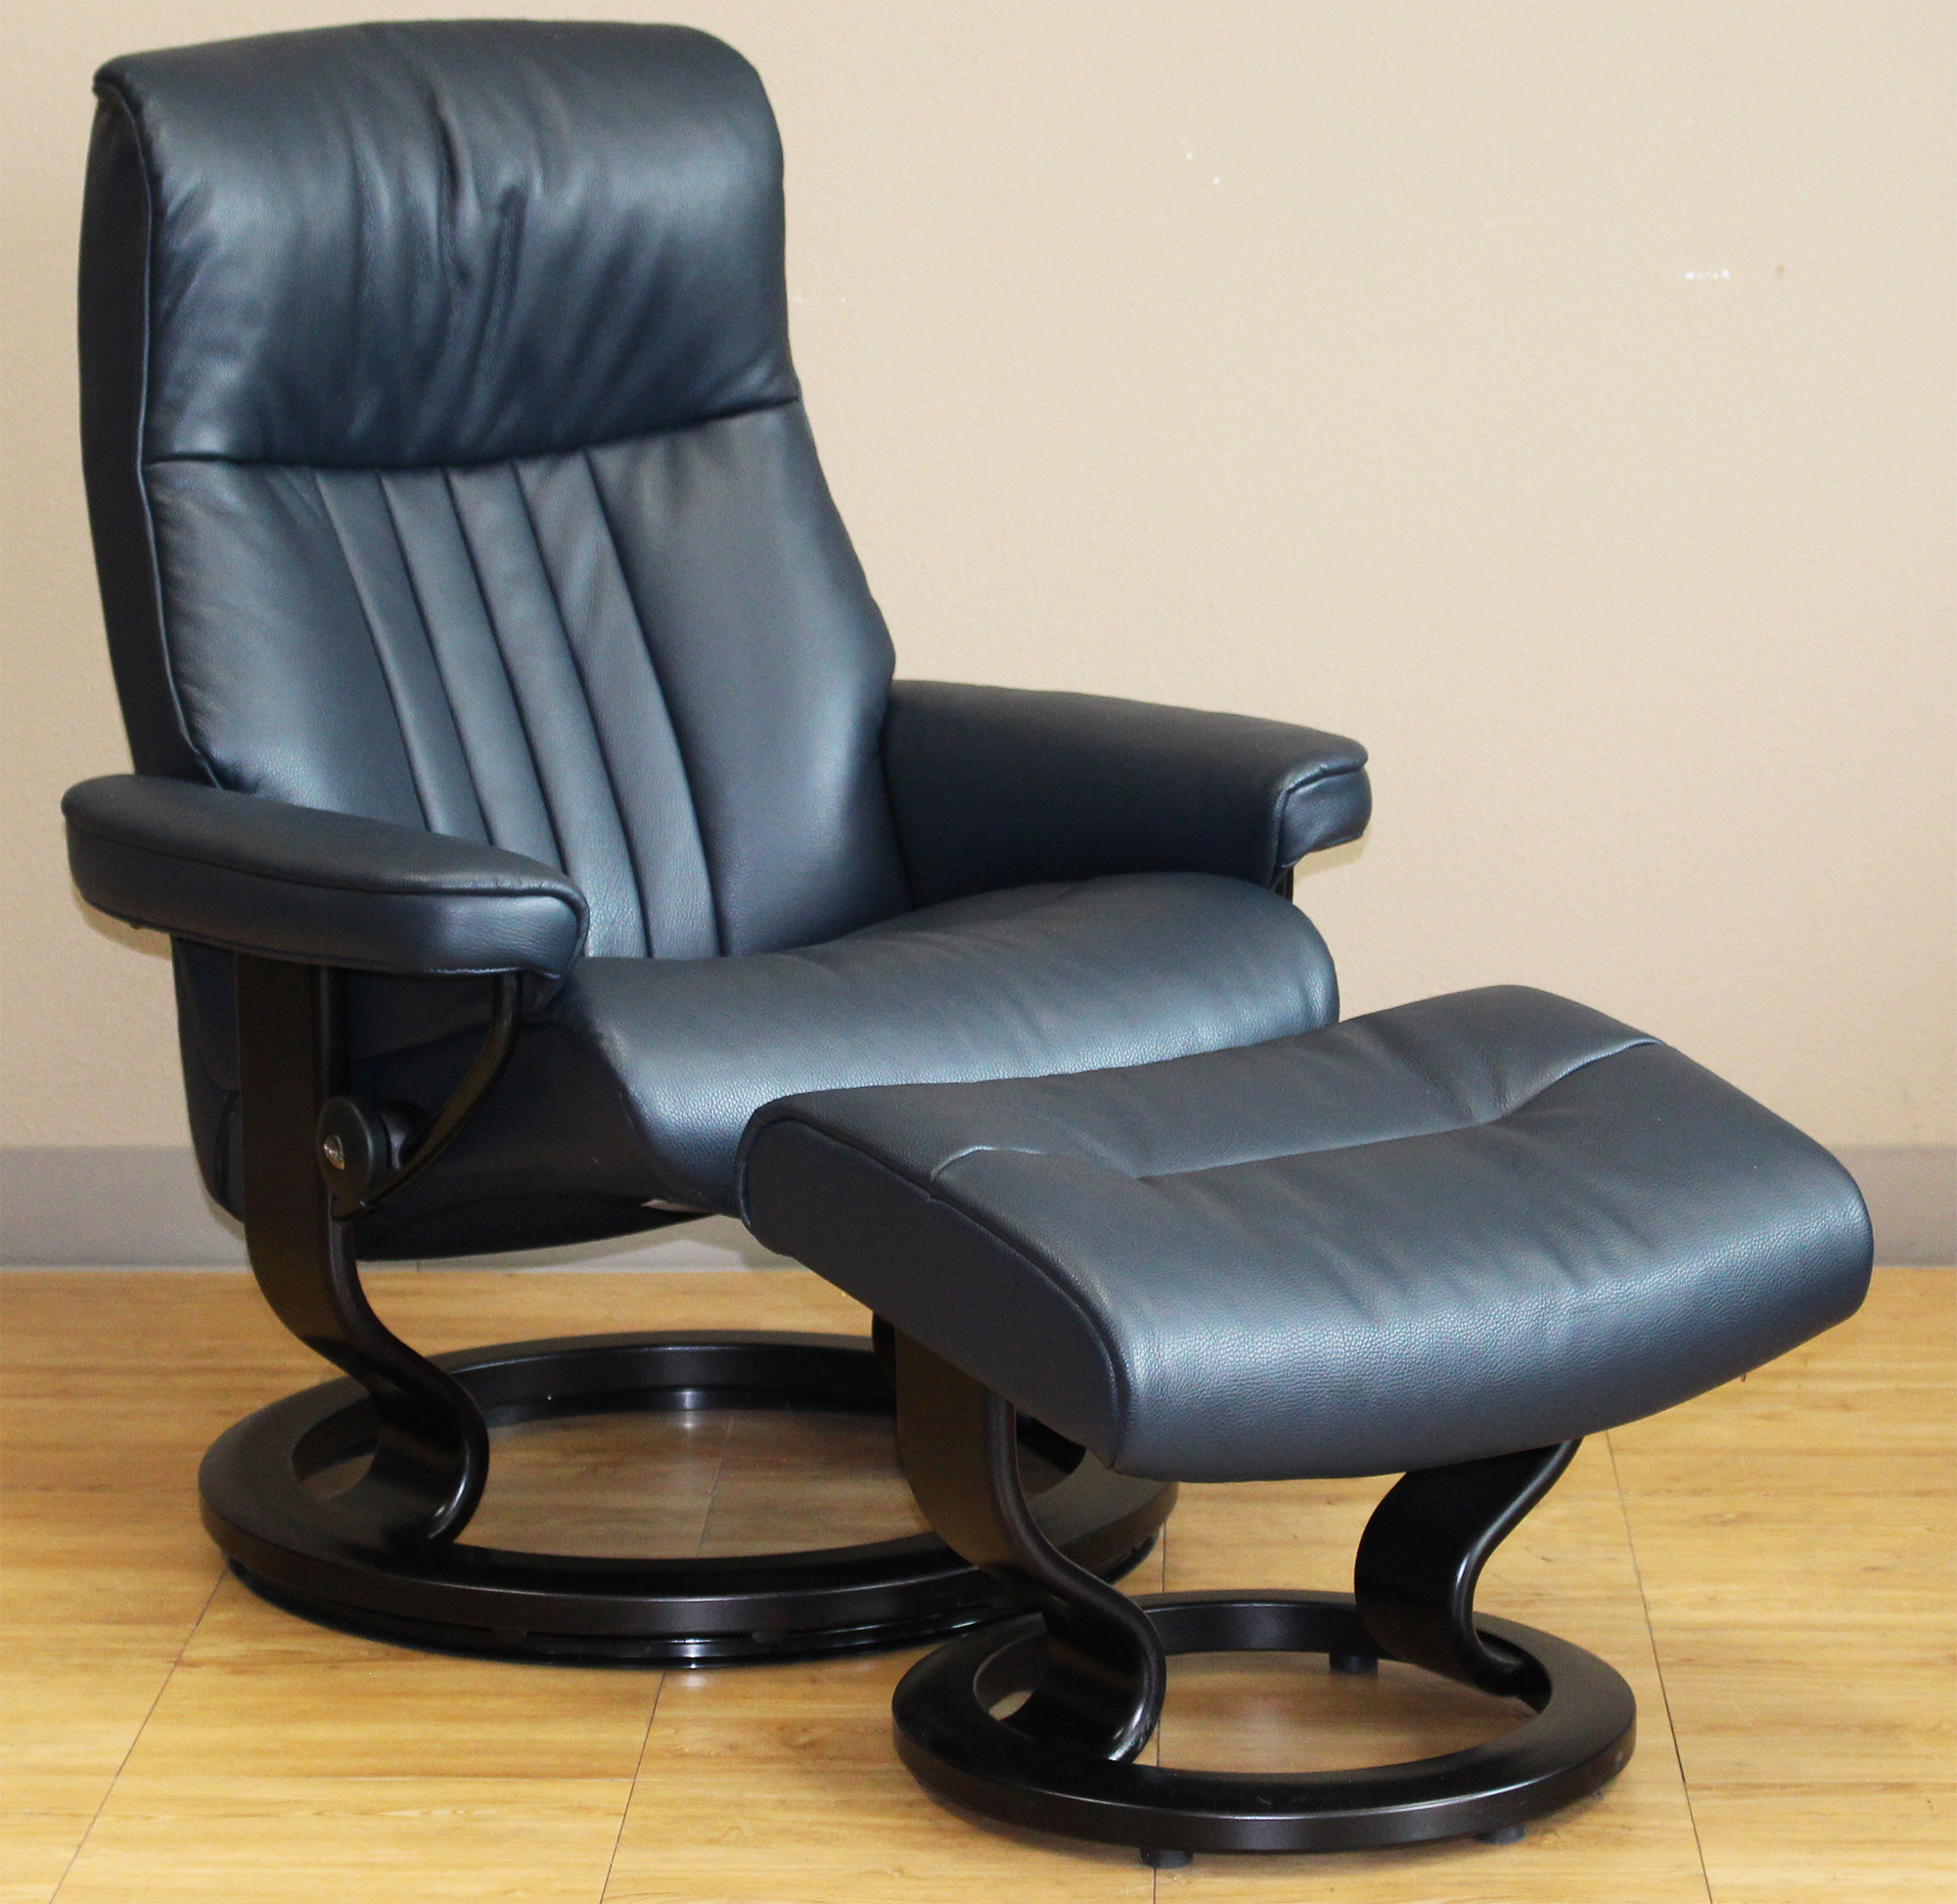 Stressless Crown Cori Blue Leather Recliner Chair by Ekornes : large leather recliner chairs - islam-shia.org